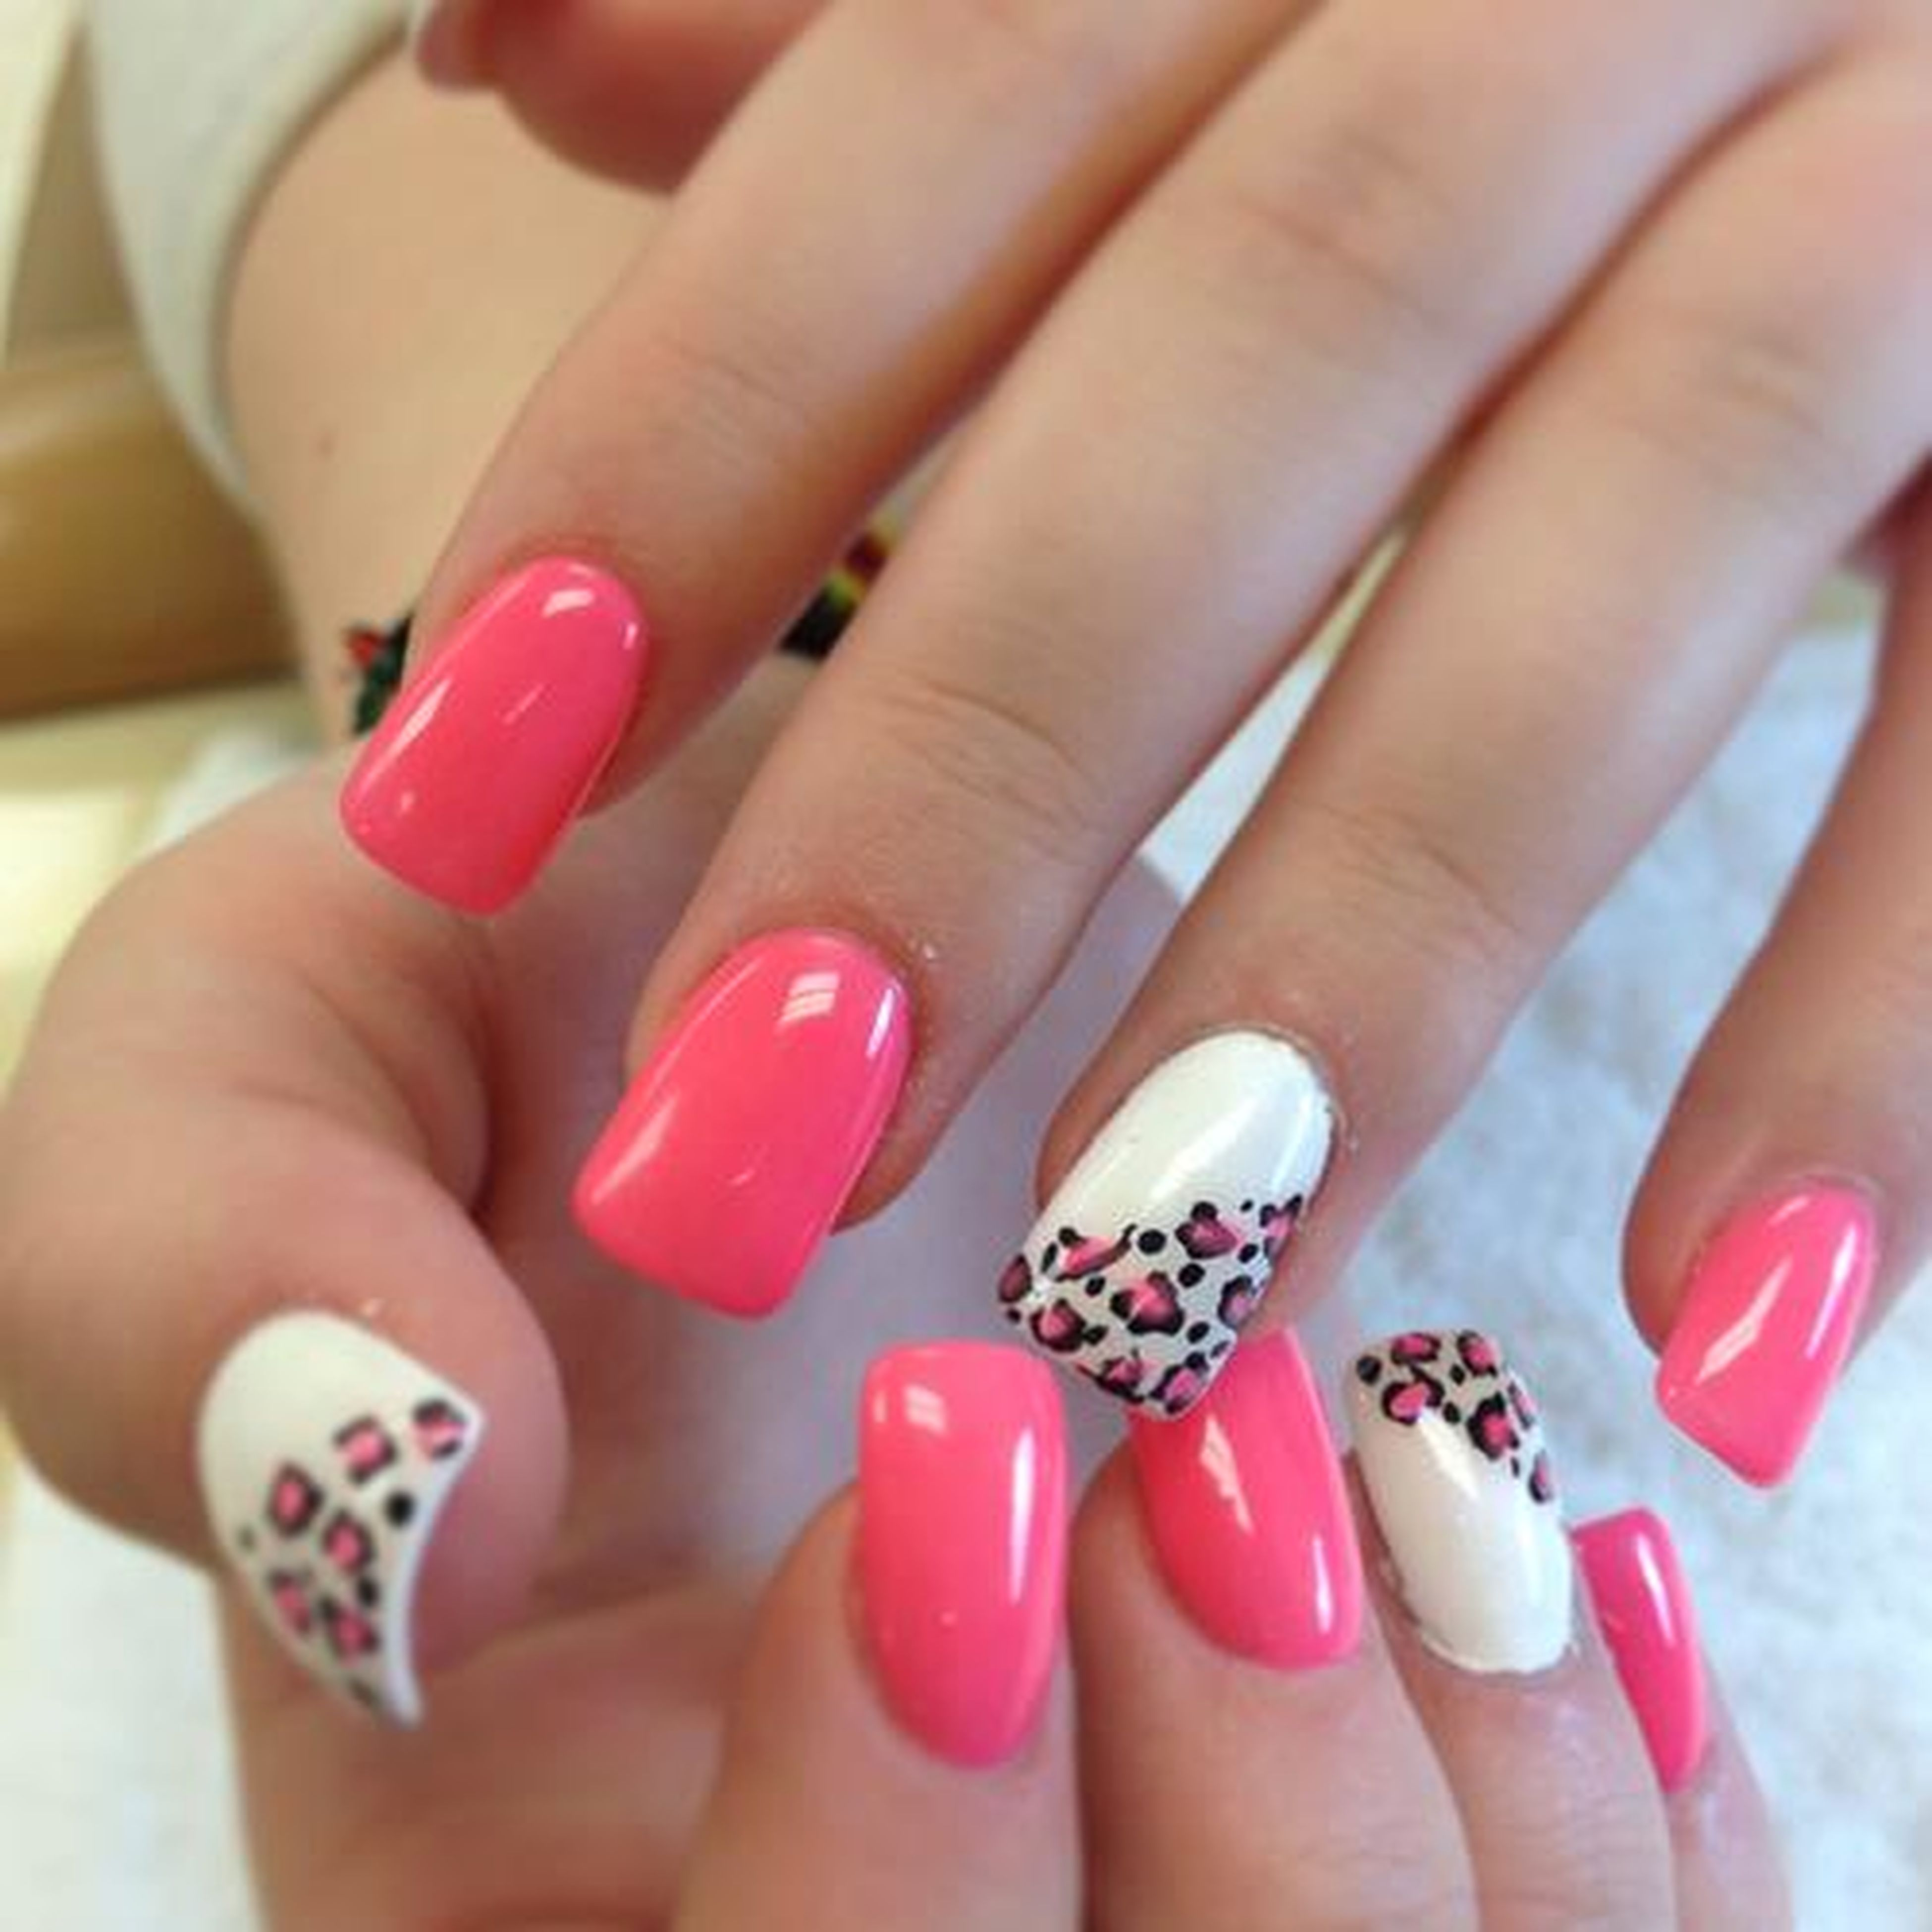 person, part of, holding, personal perspective, cropped, human finger, nail polish, unrecognizable person, lifestyles, leisure activity, close-up, palm, red, high angle view, showing